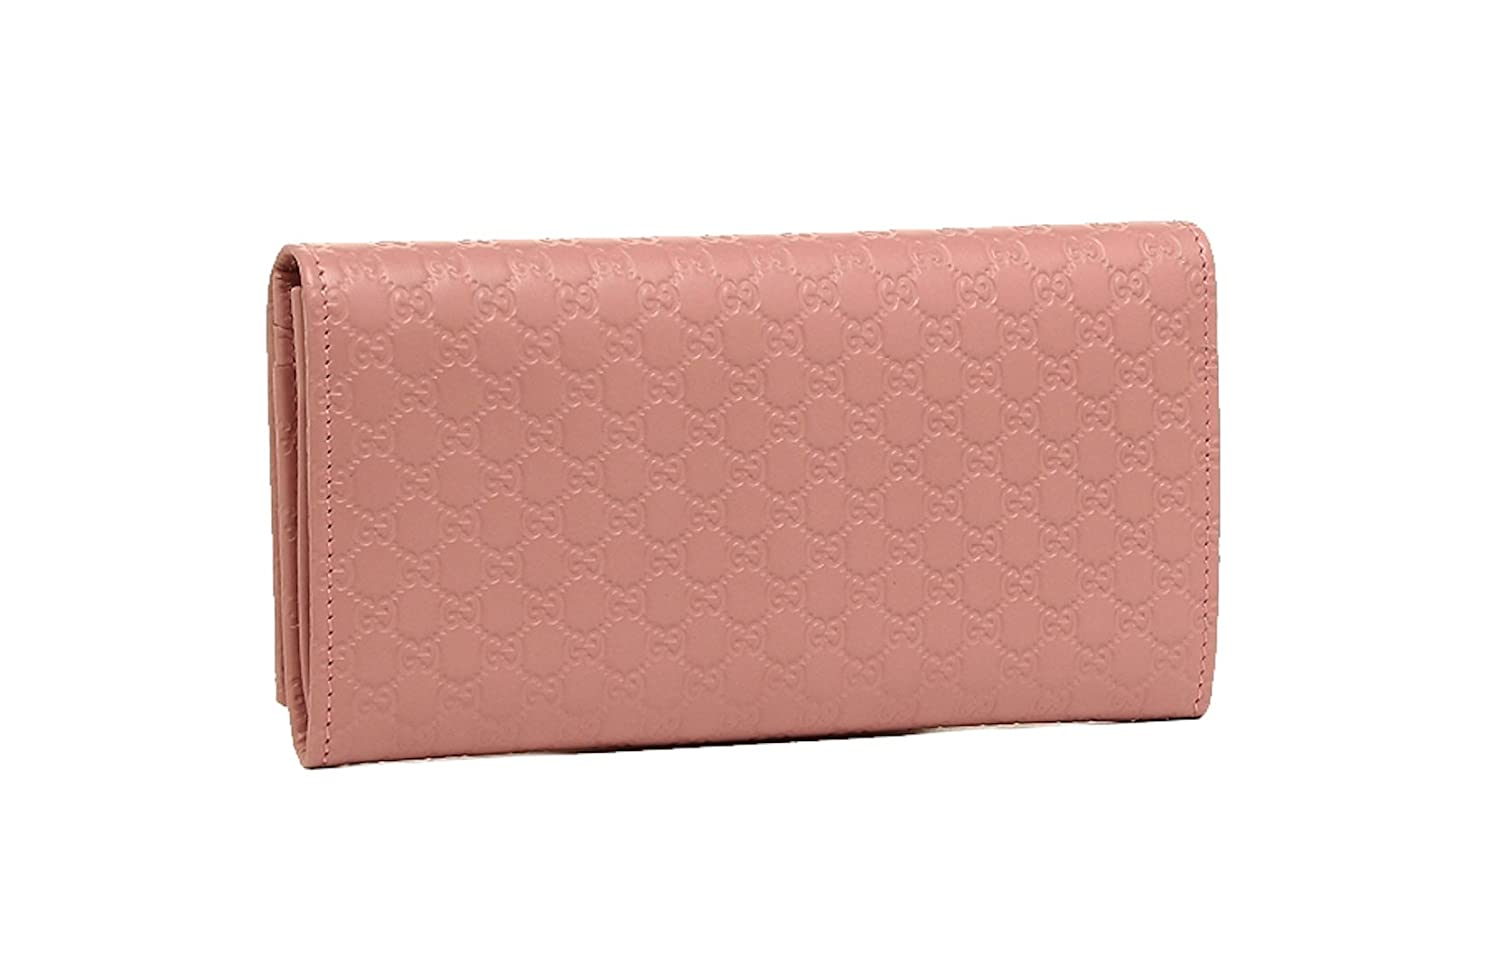 348df792a16a Gucci Women's Signature GG Micro Guccissima Continental Flap Long Bifold  Leather Wallet - Soft Pink 449396 BMJ1G 5806: Amazon.co.uk: Luggage